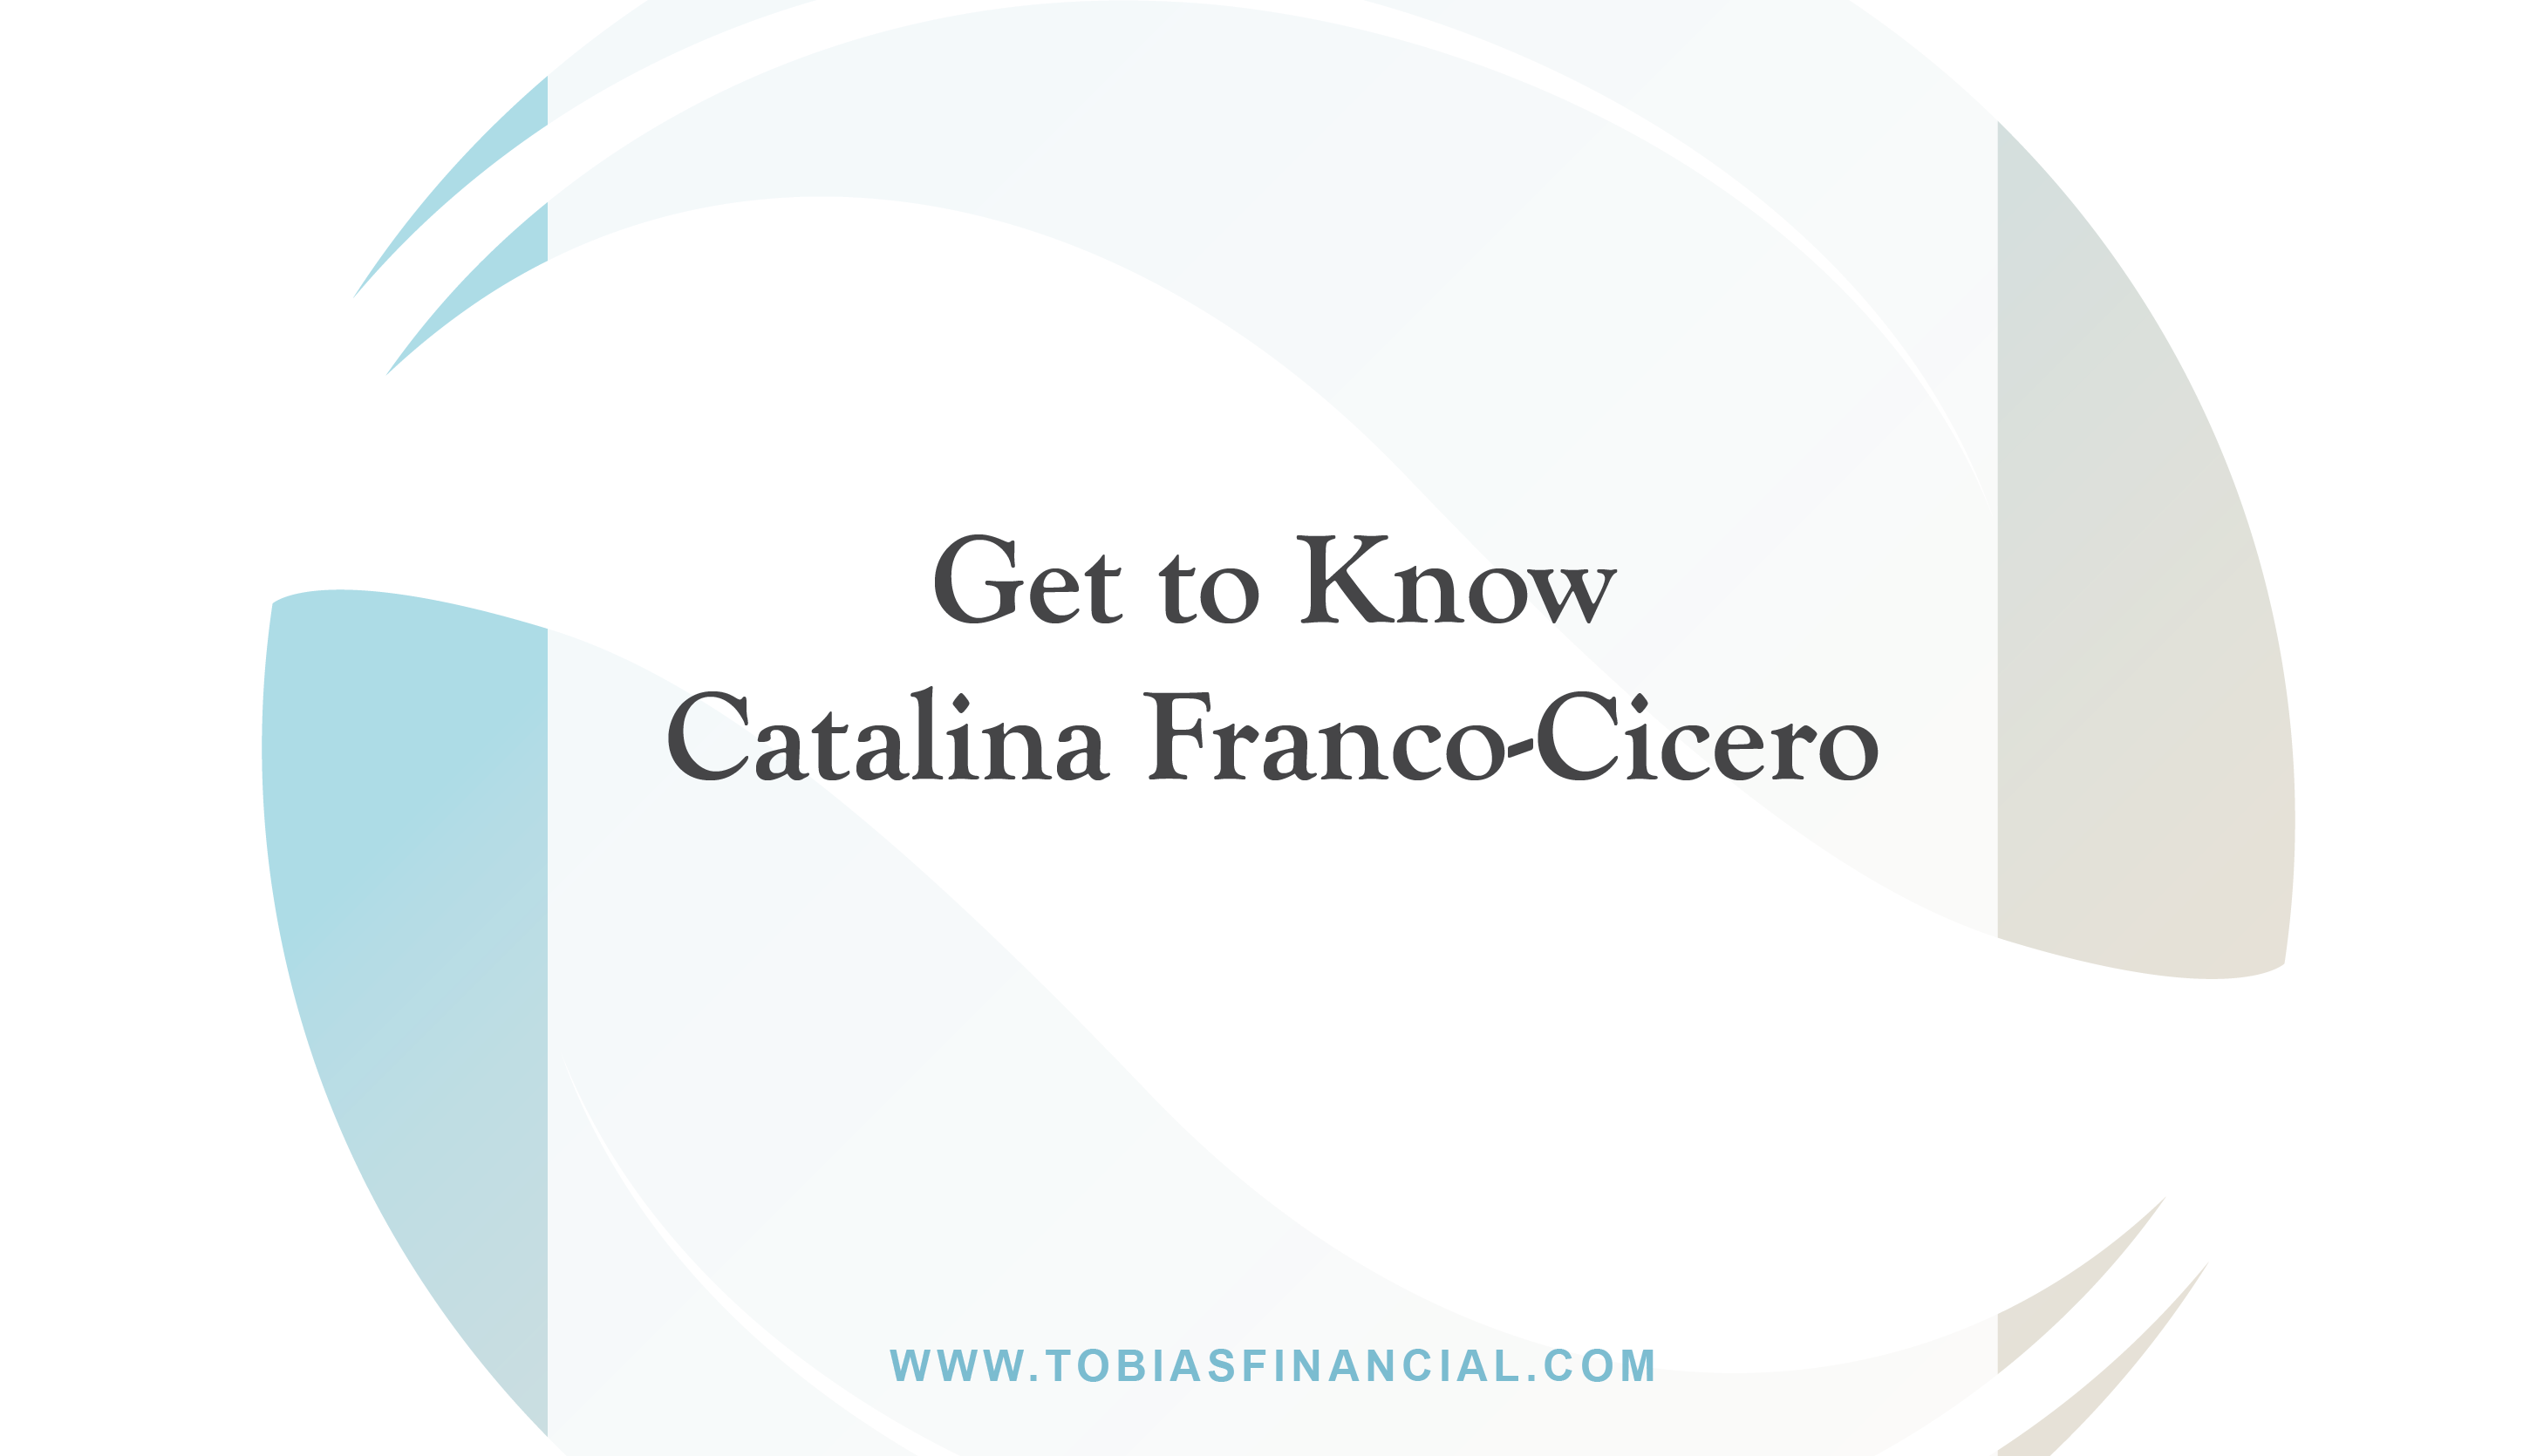 Get to Know Catalina Franco-Cicero